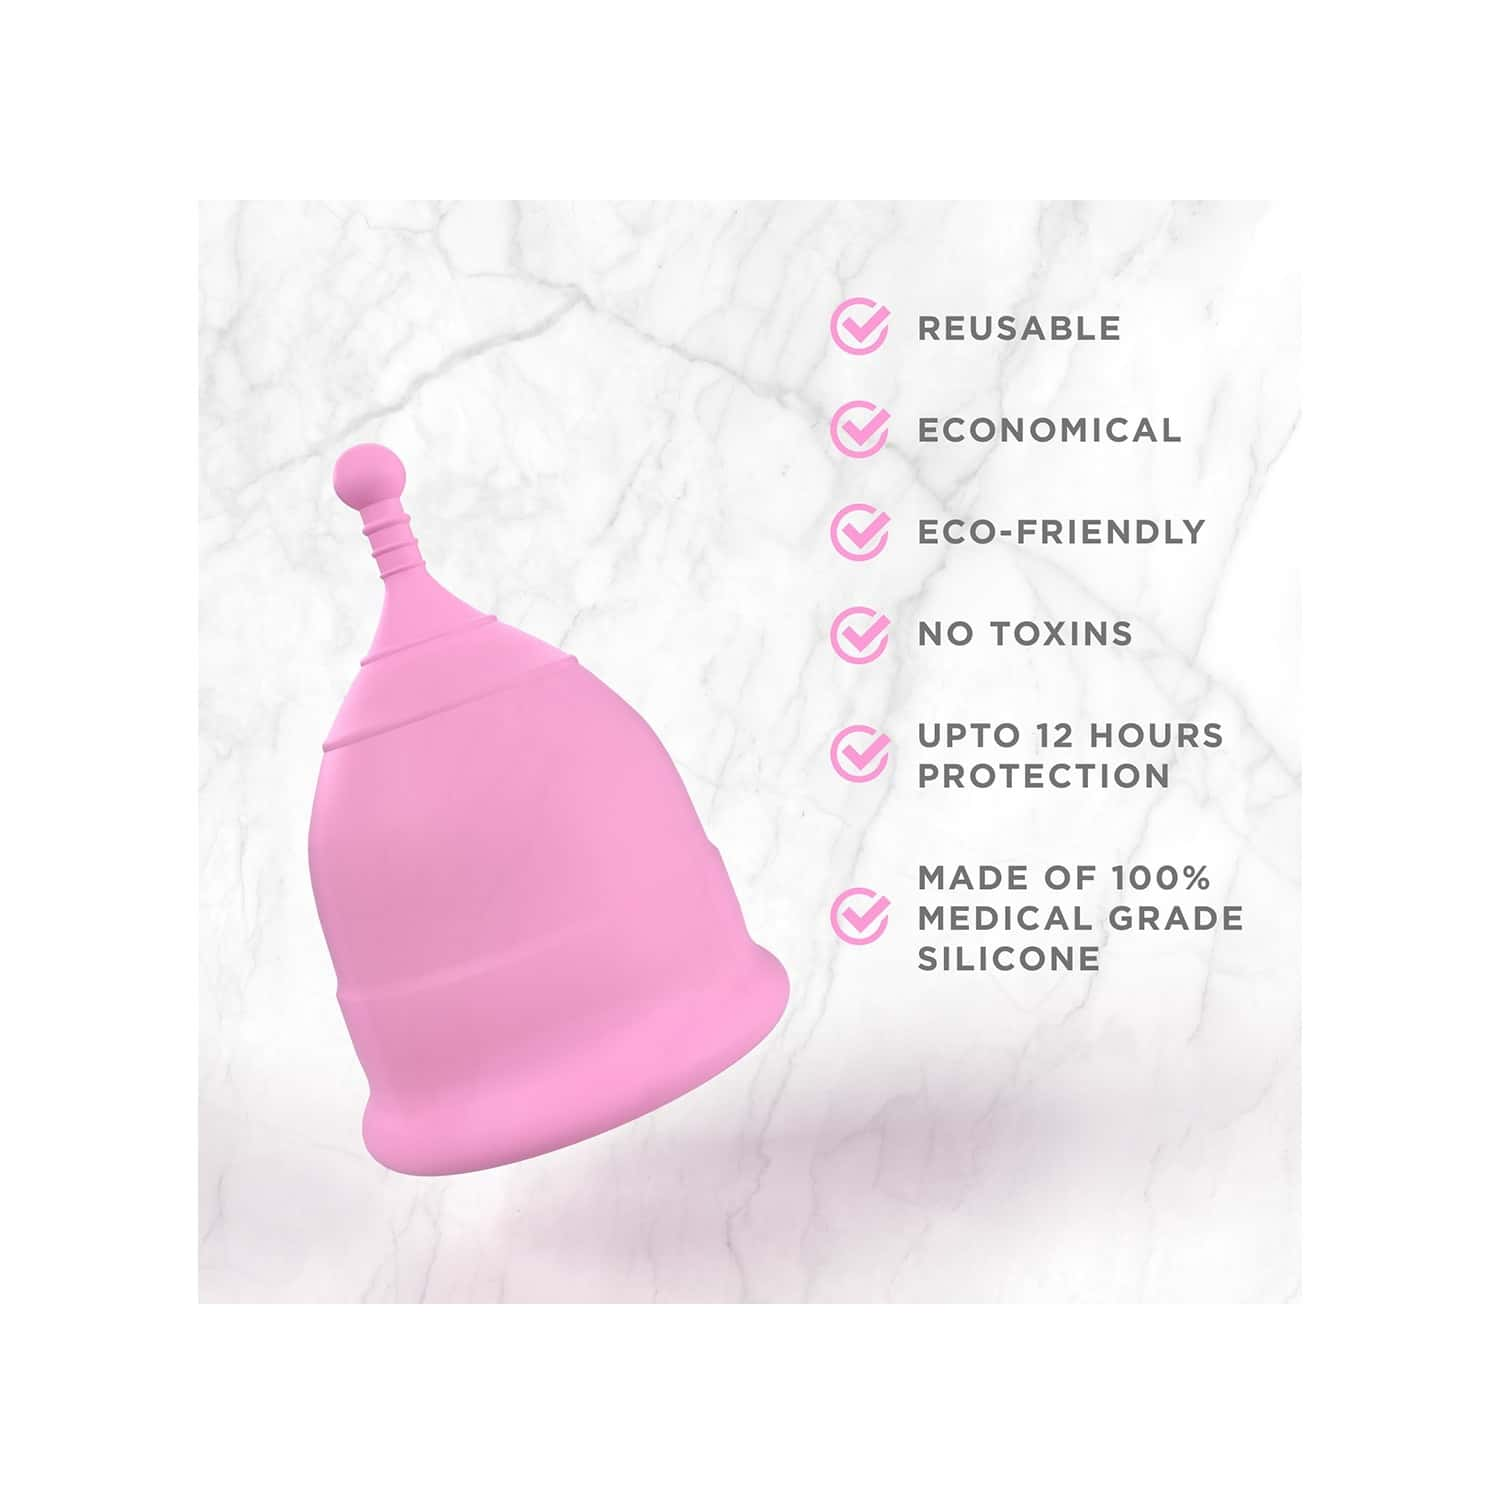 Pee Safe Reusable Menstrual Cup With Medical Grade Silcone For Women - Small